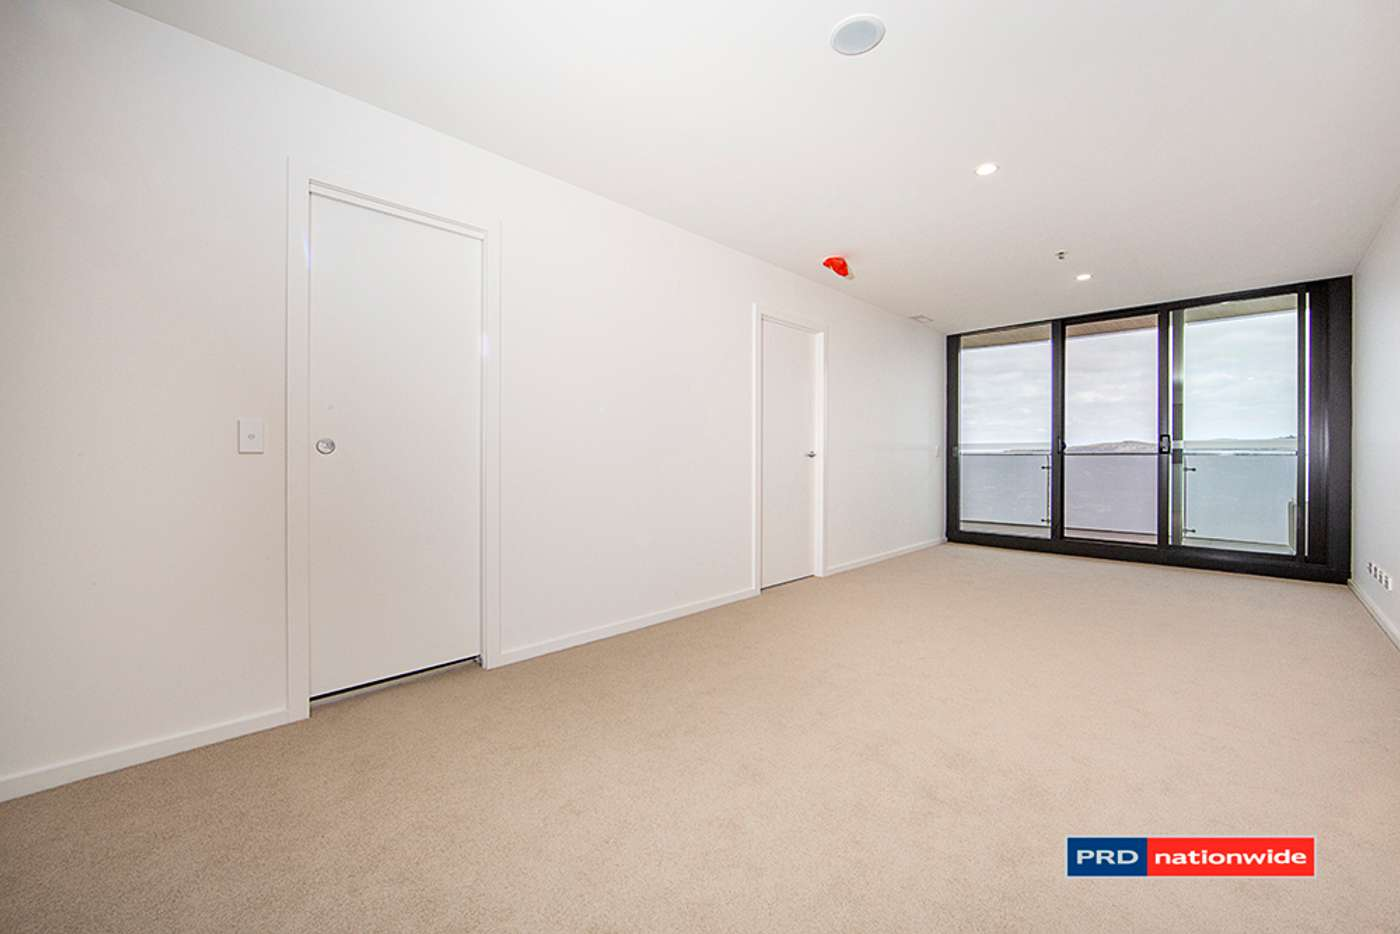 Sixth view of Homely apartment listing, 188/1 Anthony Rolfe Avenue, Gungahlin ACT 2912